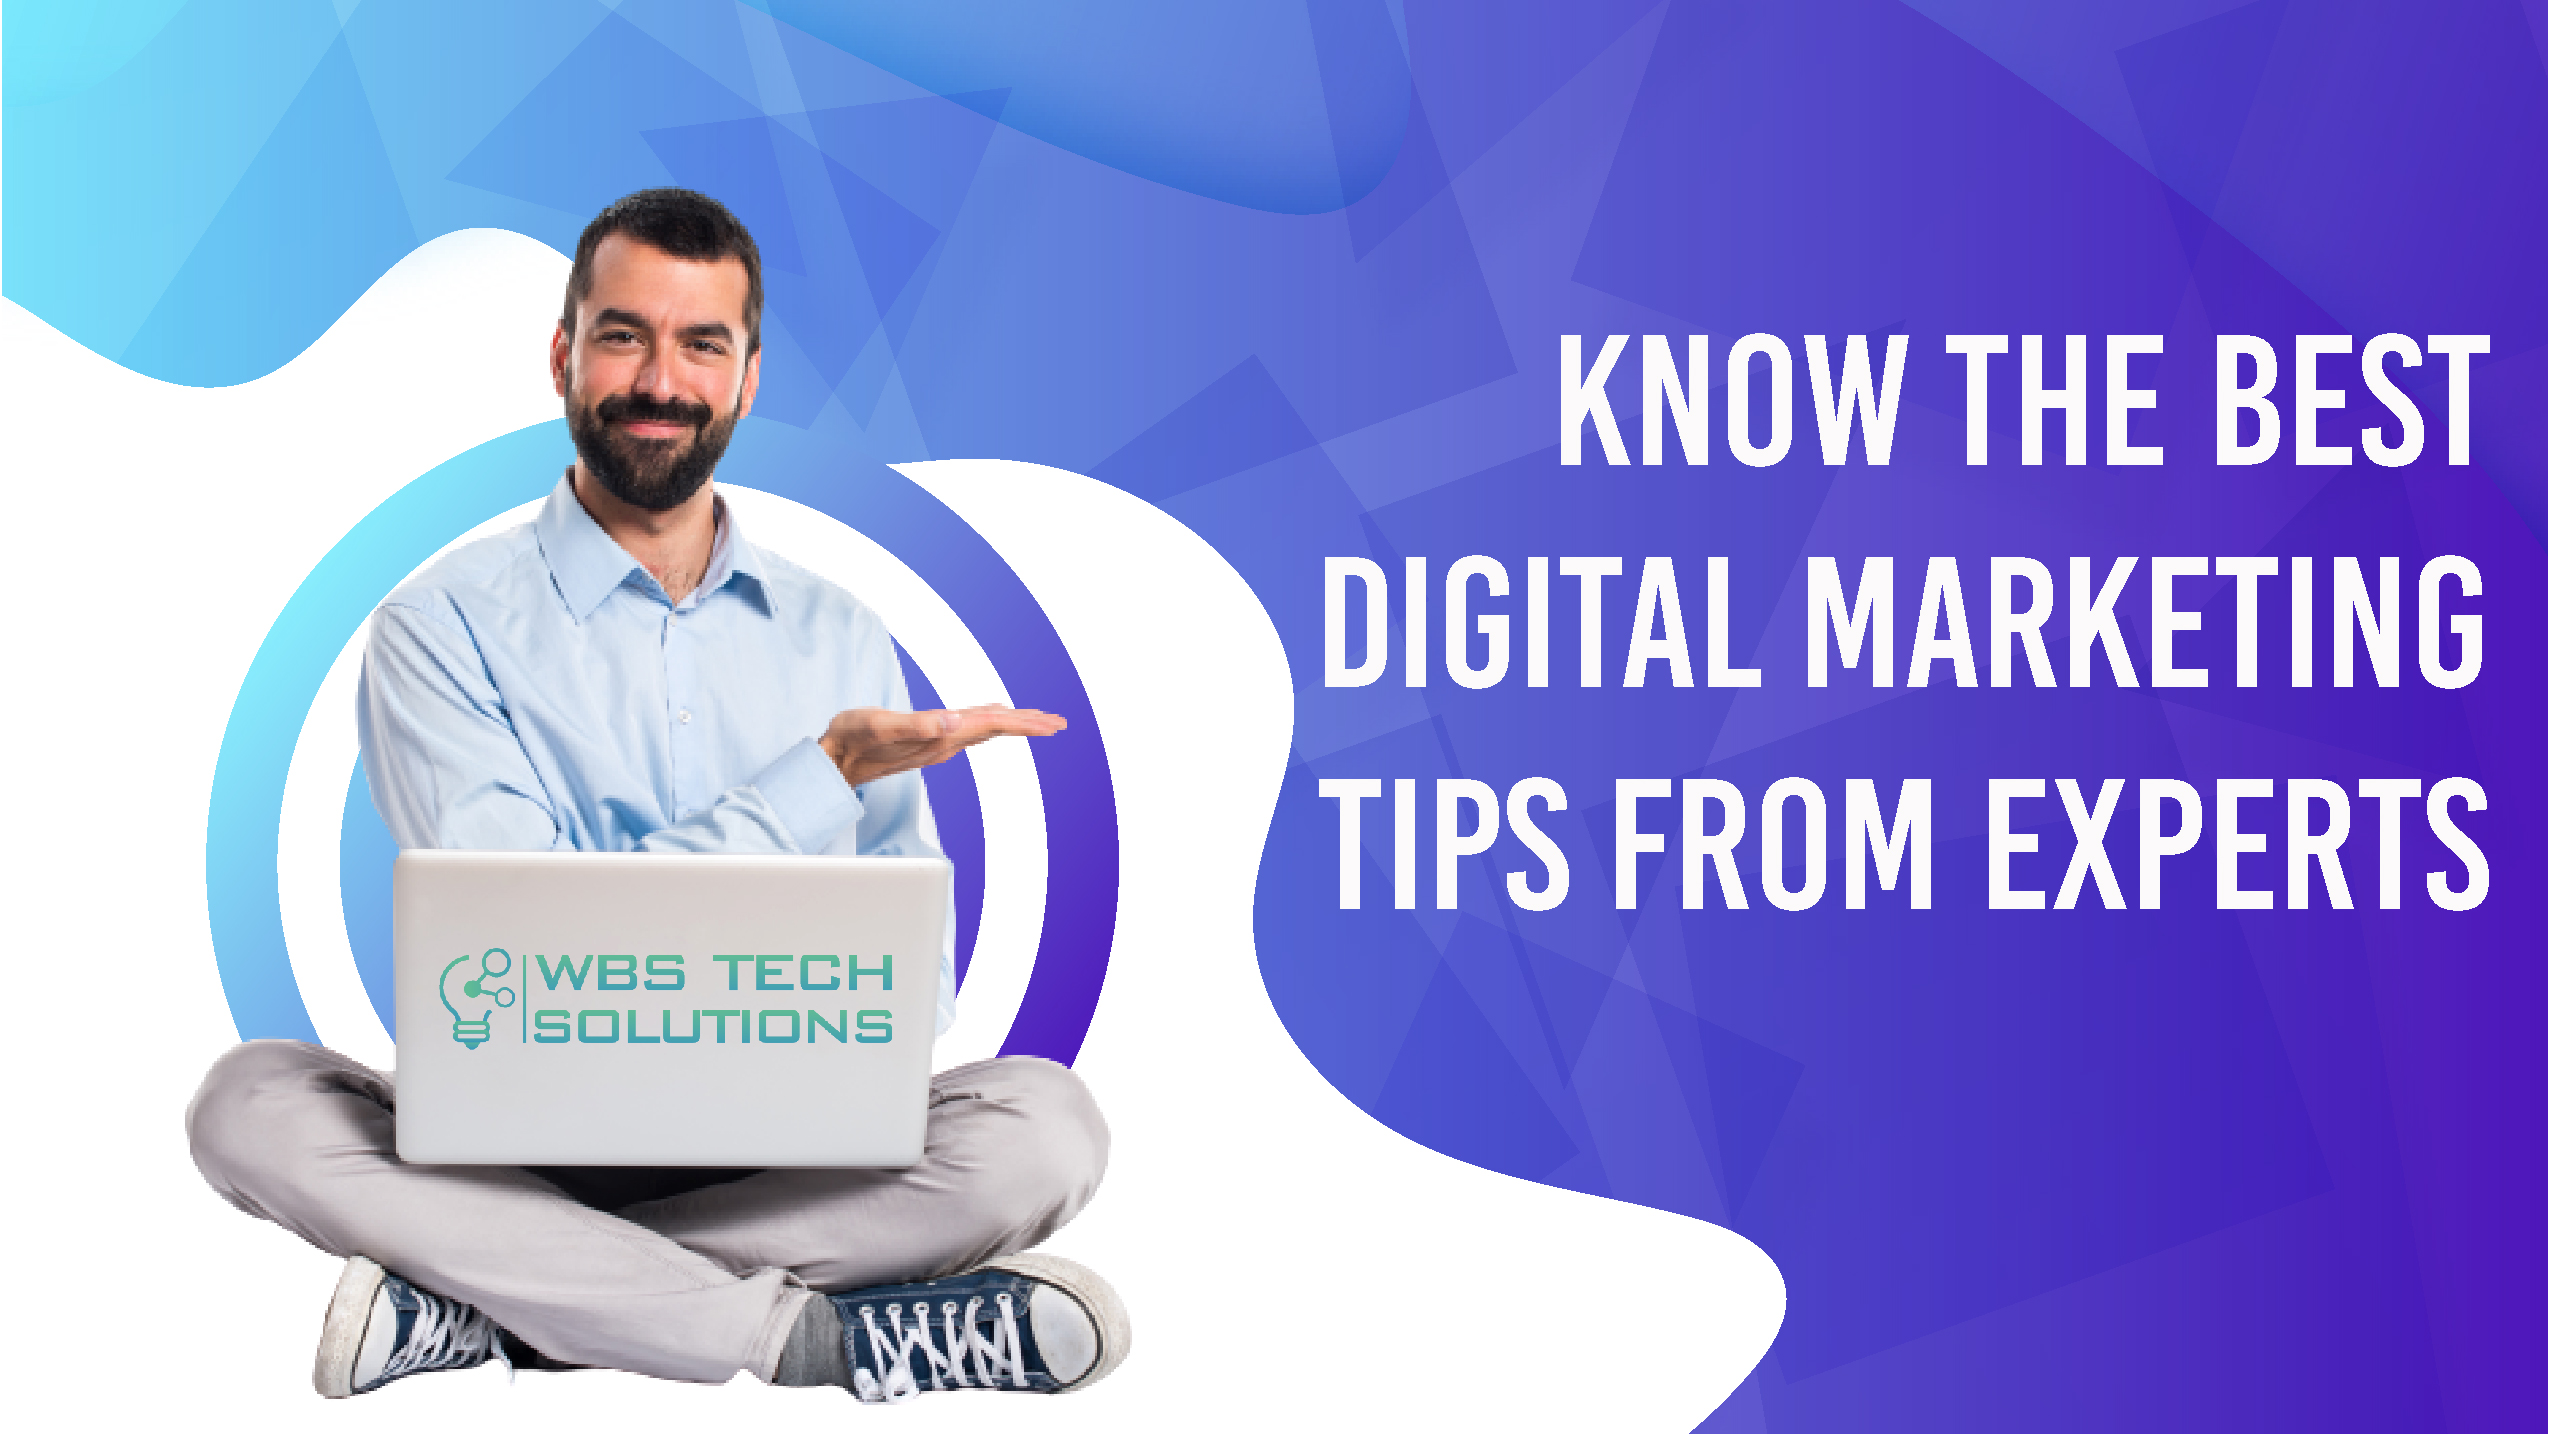 Know the Best Digital Marketing Tips from Experts